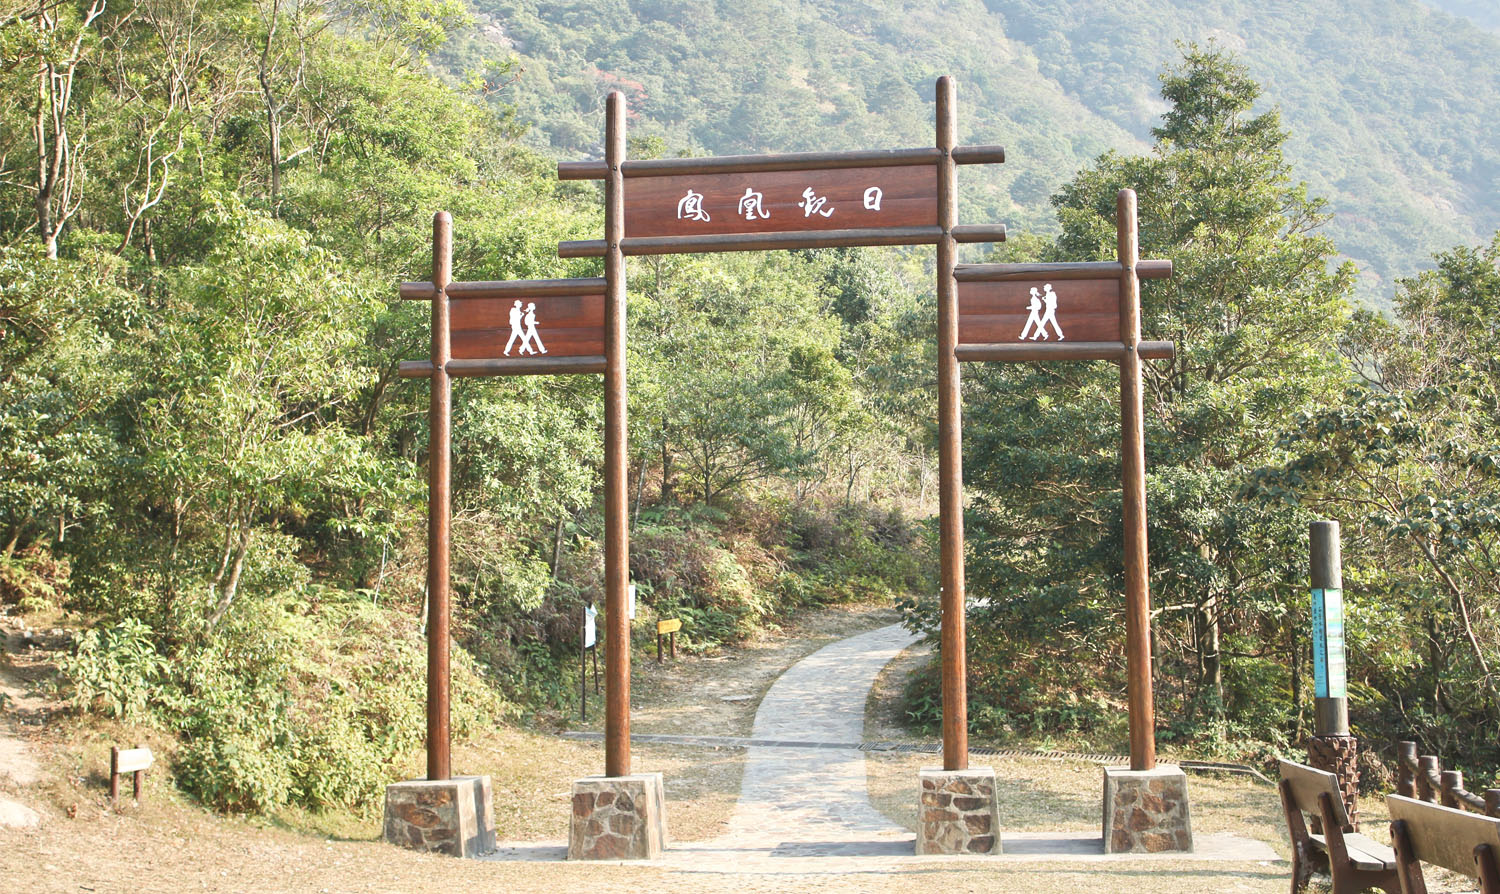 Hong Kong's Outlying Islands Hiking Trails